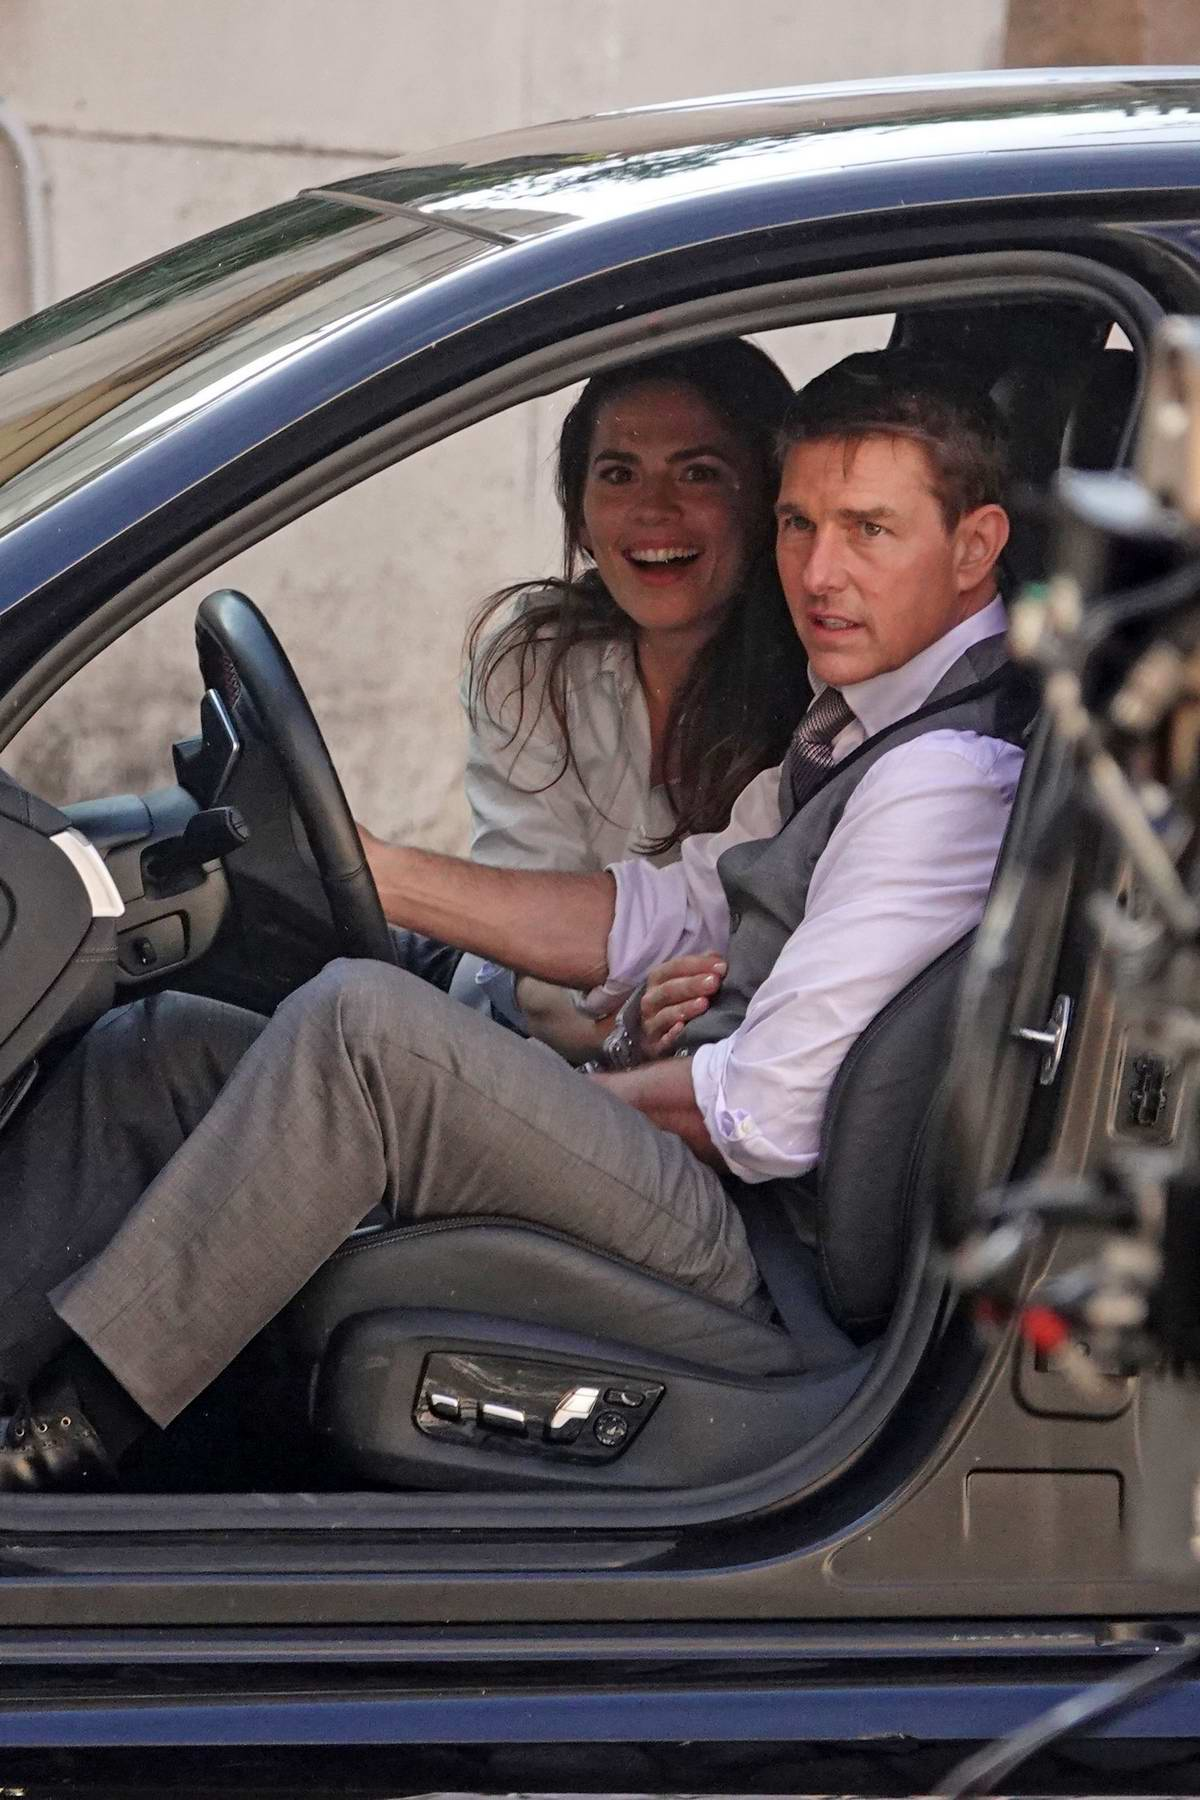 Hayley Atwell and Tom Cruise spotted filming a high-octane car scene for 'Mission Impossible 7' in Rome, Italy